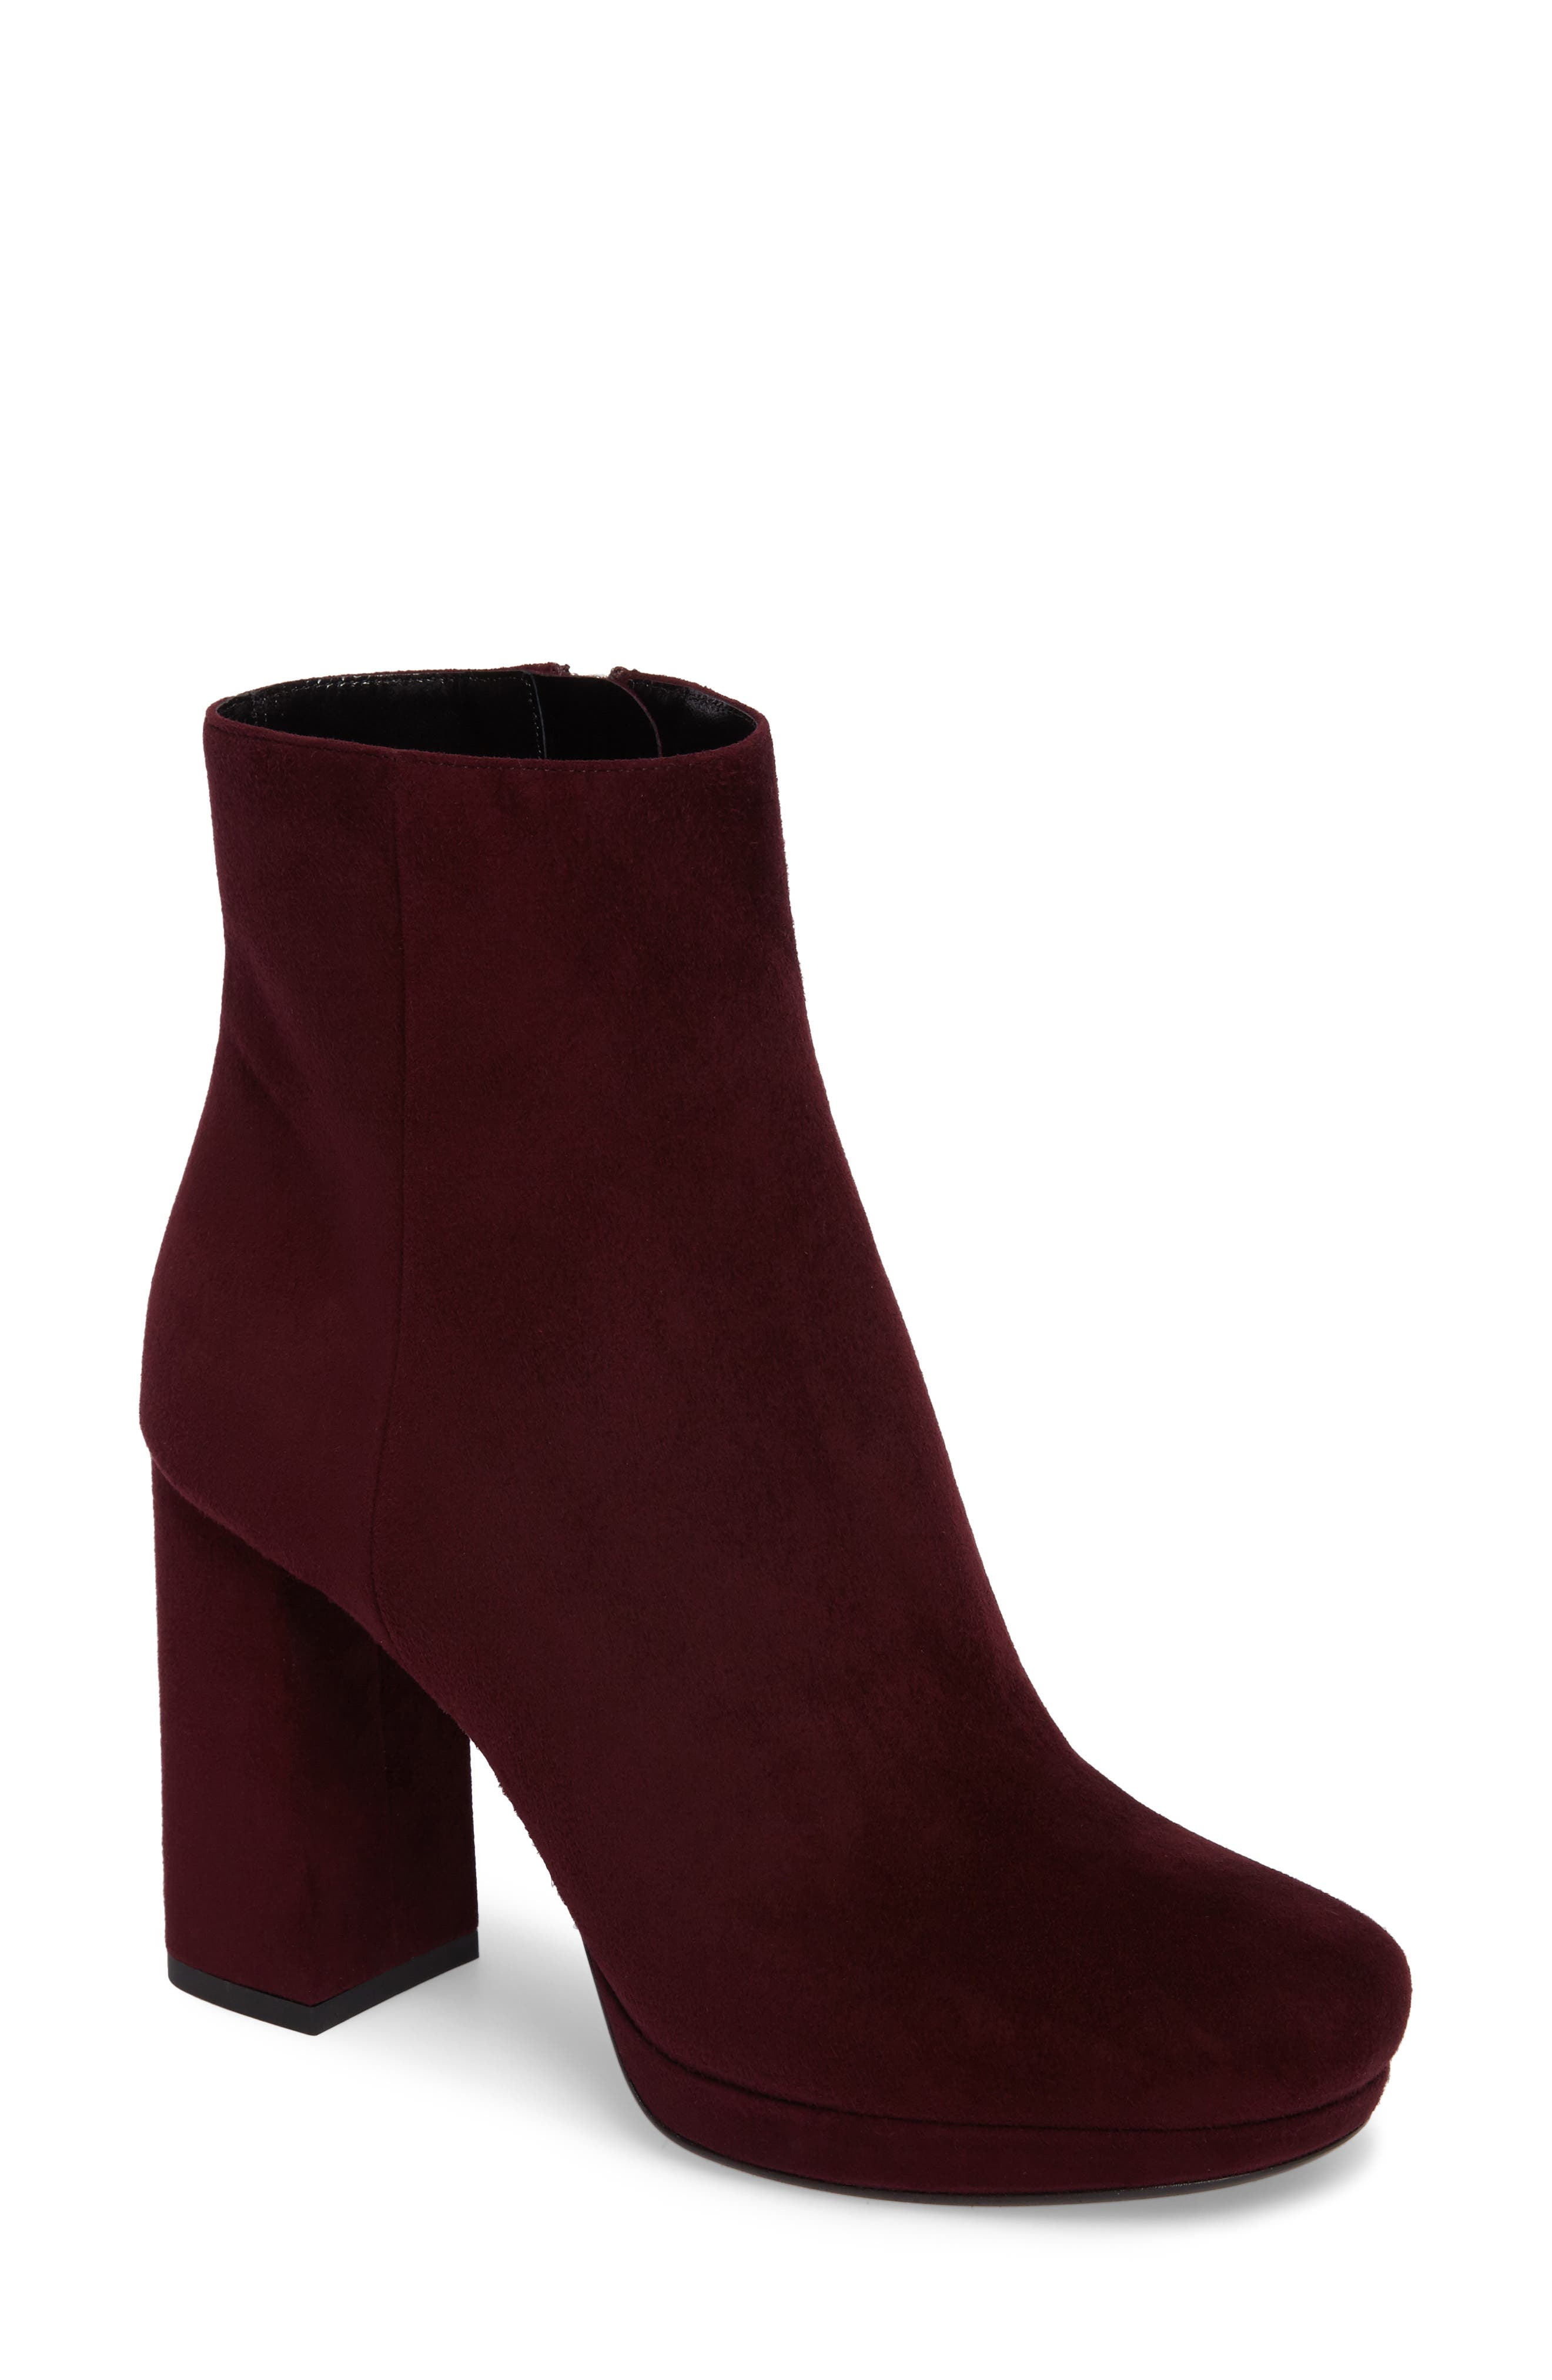 Image result for nordstrom women's booties